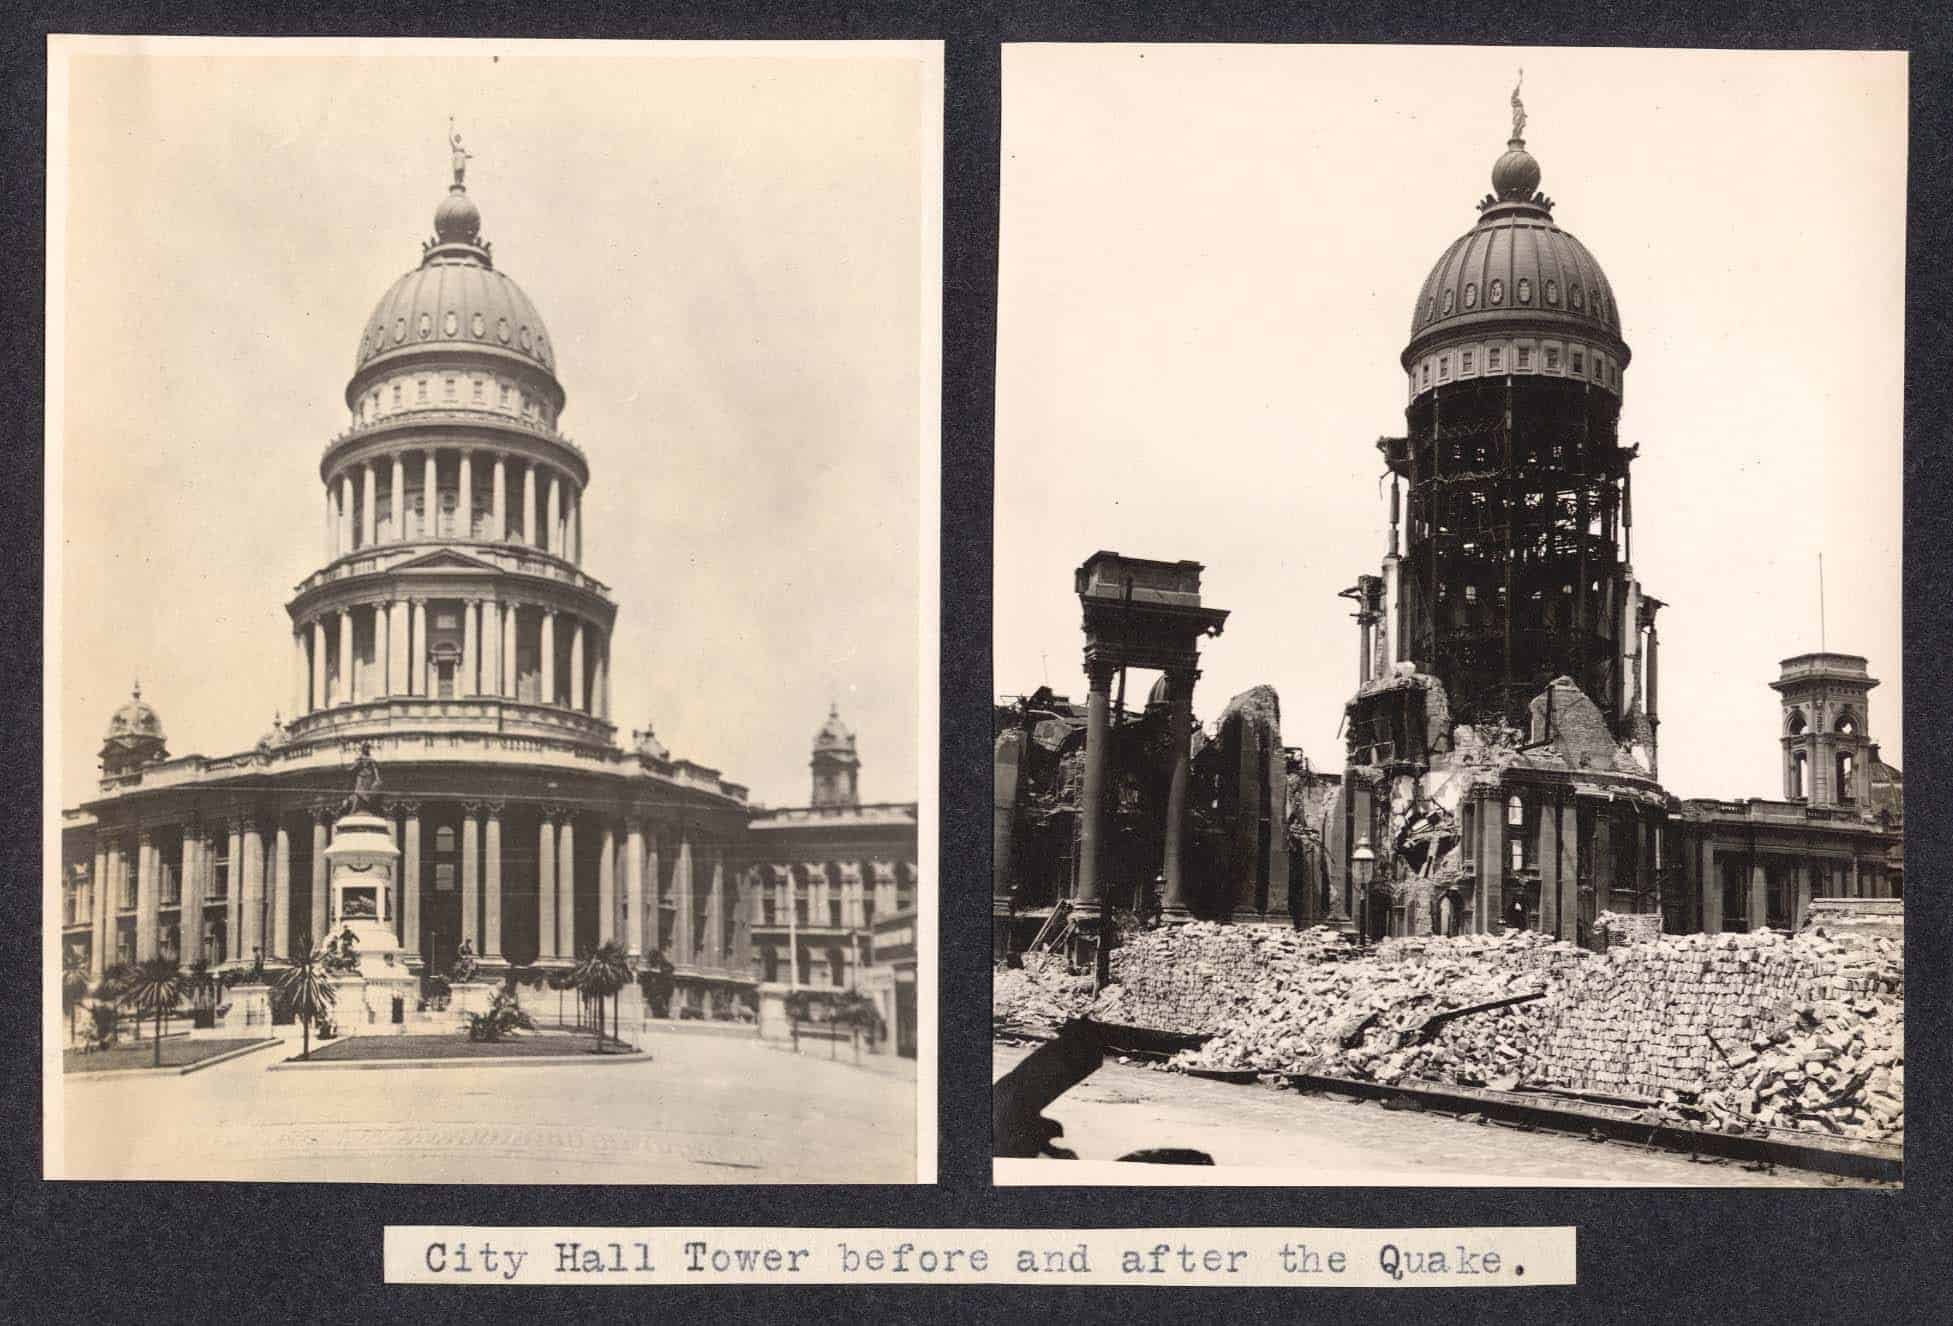 San Francisco's old city hall before and after 1906 Earthquake